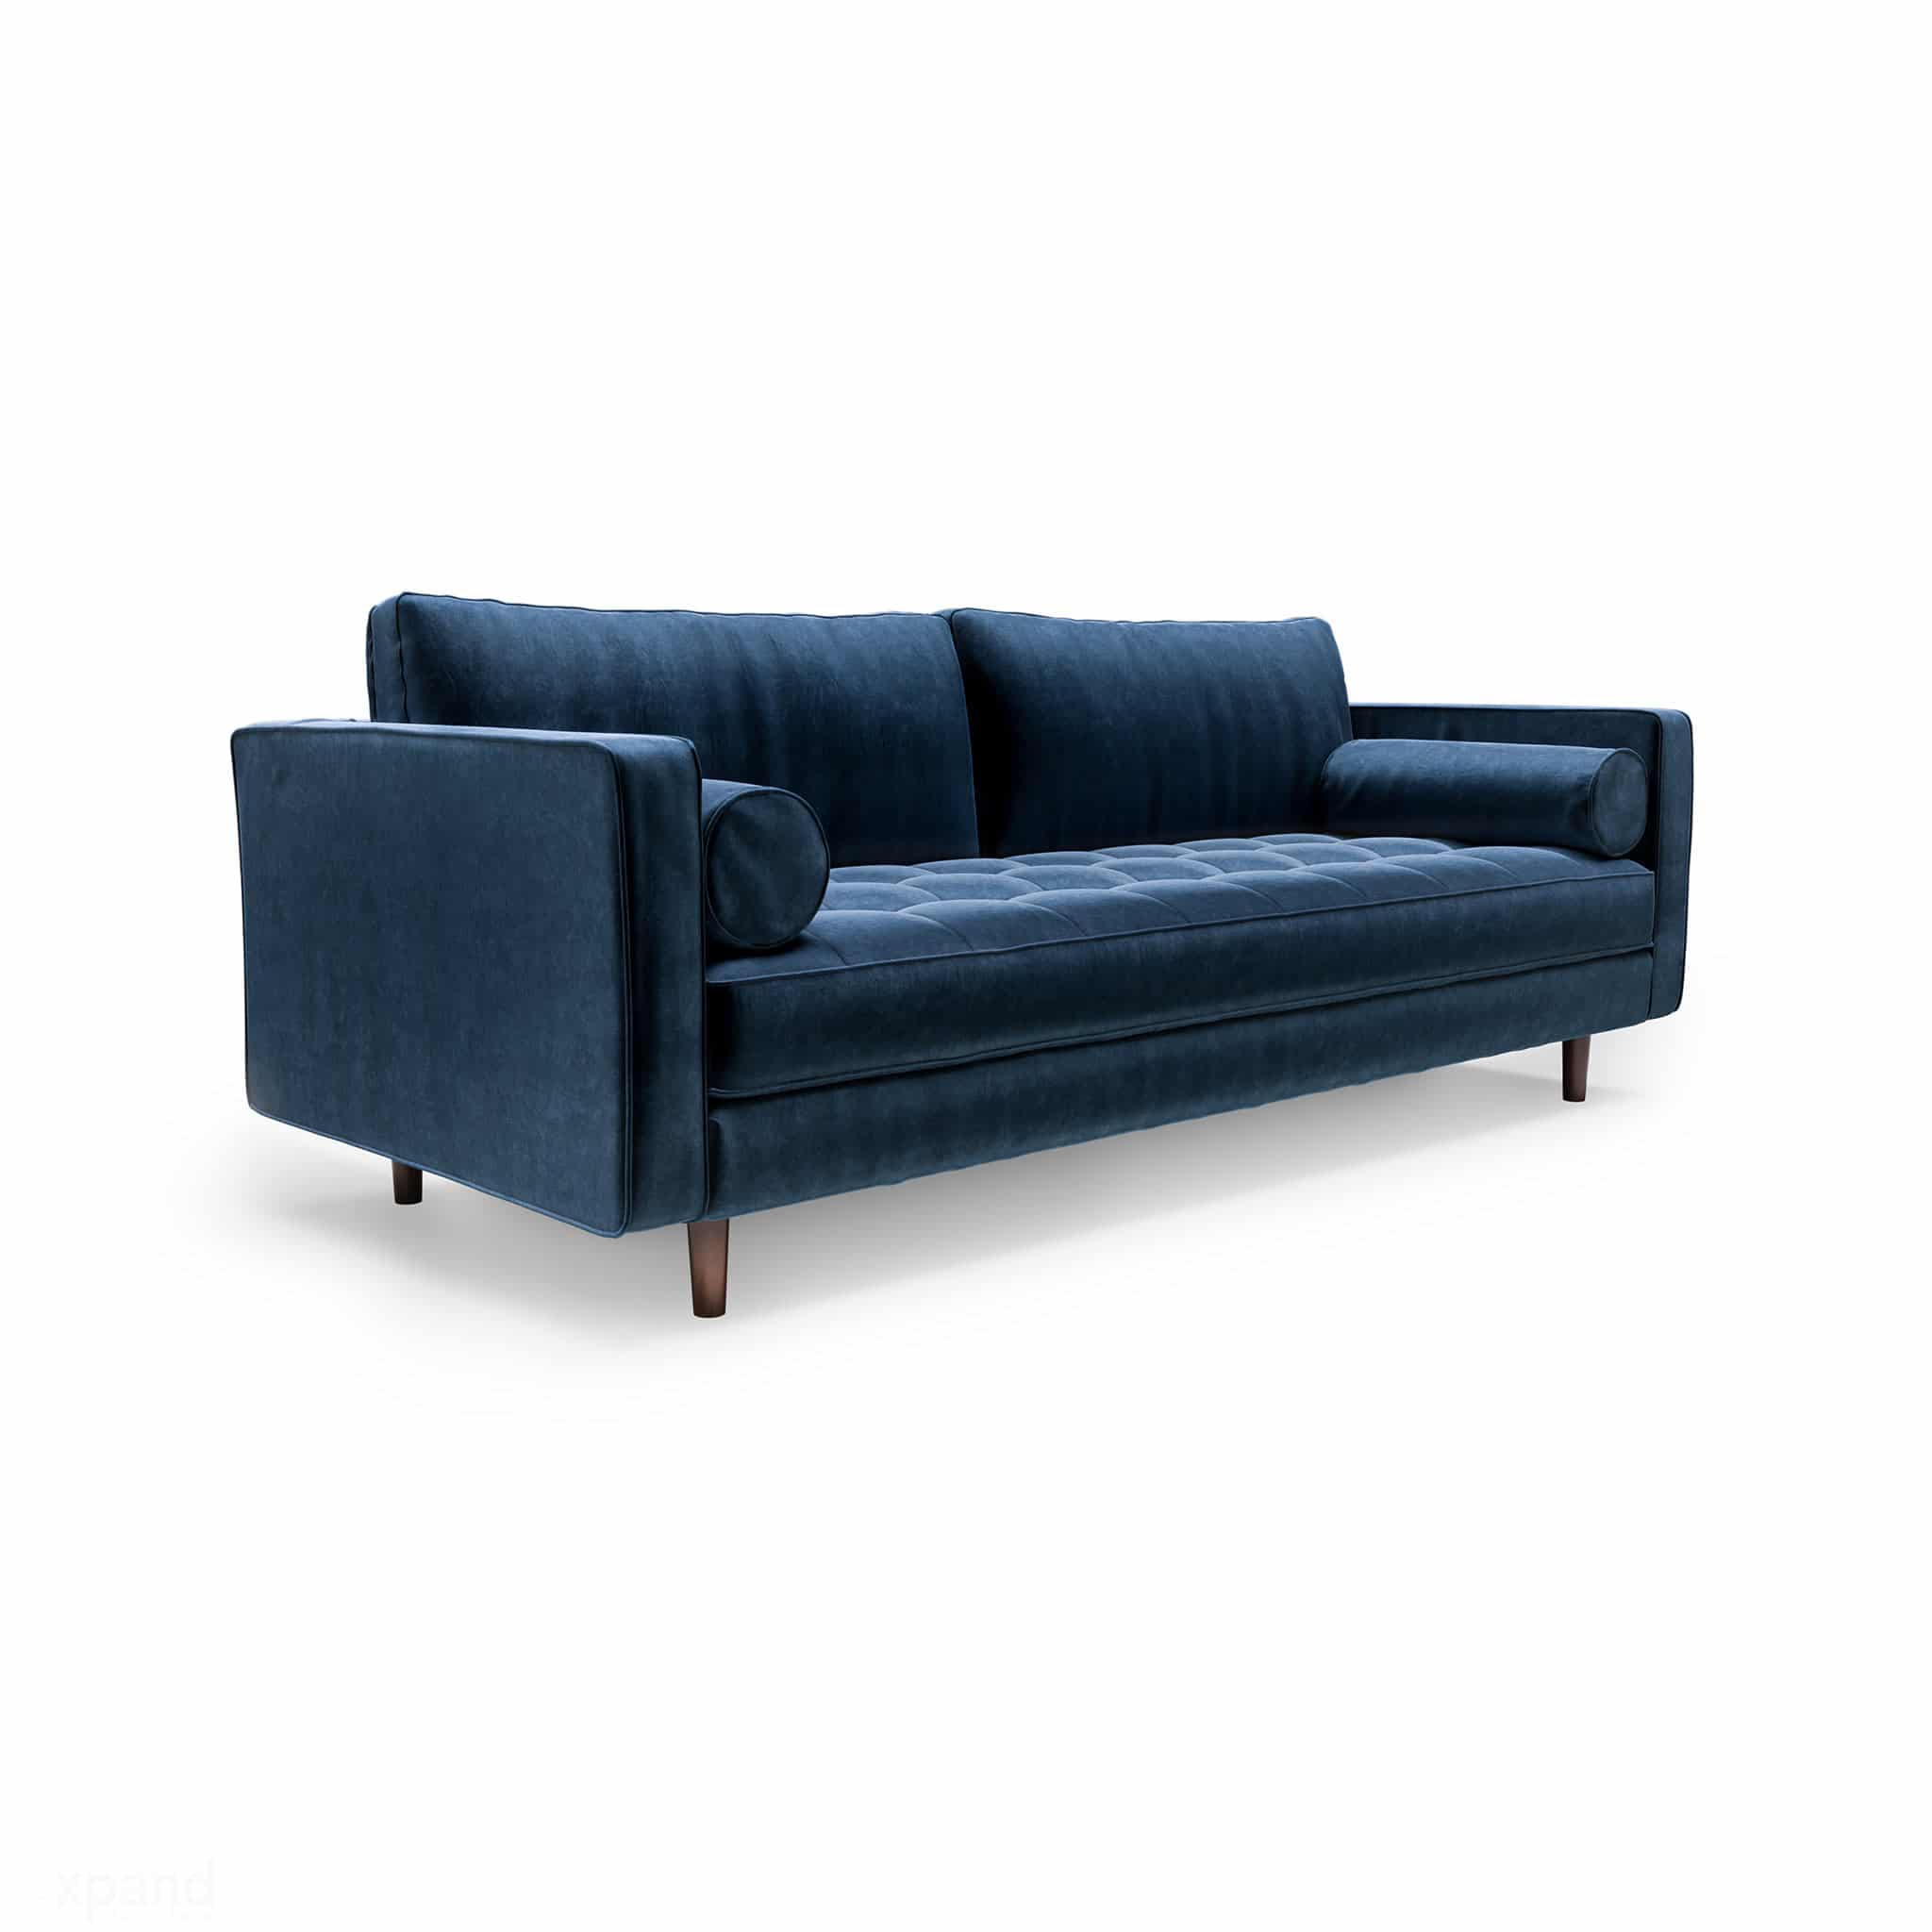 Scandormi Modern Sofa Navy Blue Mid Century Tufted Couch Expand Furniture Folding Tables Smarter Wall Beds Space Savers